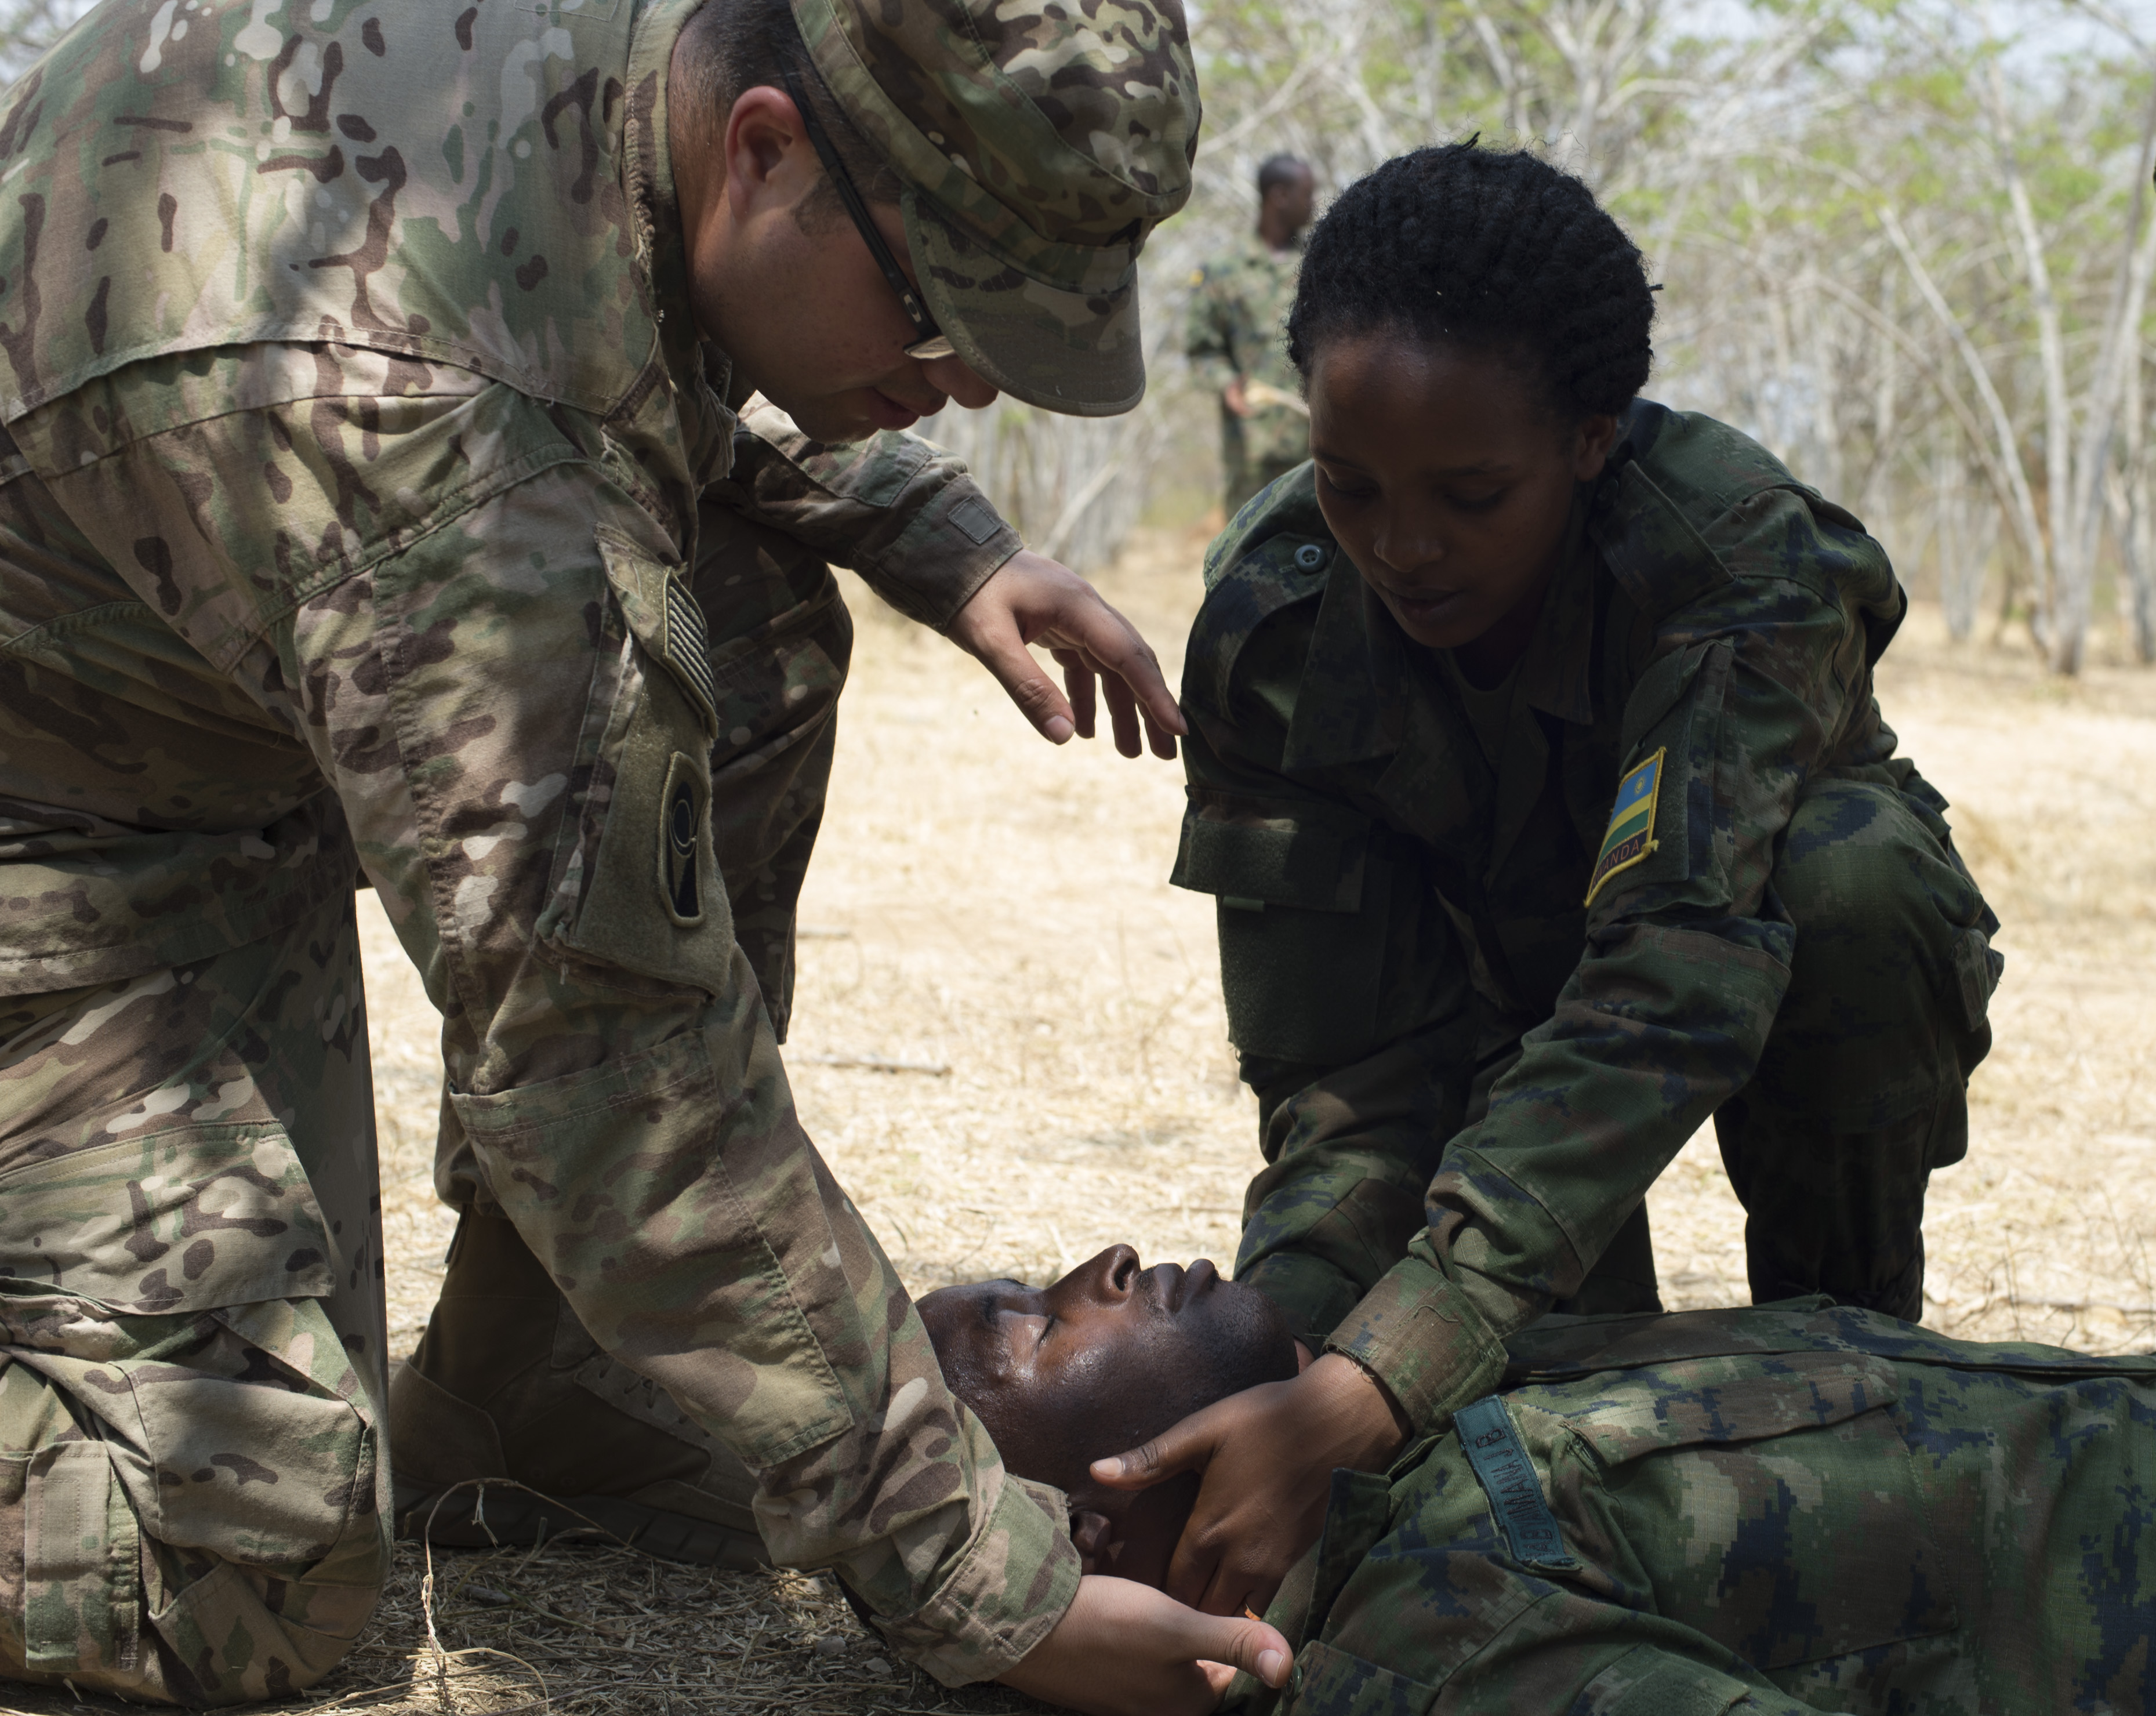 U.S. Army Sgt. Jonathan Lopez, 1st Battalion, 124th Infantry Regiment medic, shows a Rwanda Defense Force soldier where to look for a pulse to check the vitality of a mock casualty during a two-week medical course Sept. 8, 2016, at Rwanda Military Academy, Rwanda. U.S. Army soldiers, currently deployed to Combined Joint Task Force-Horn of Africa, taught the class. (U.S. Air Force photo by Staff Sgt. Eric Summers Jr.)